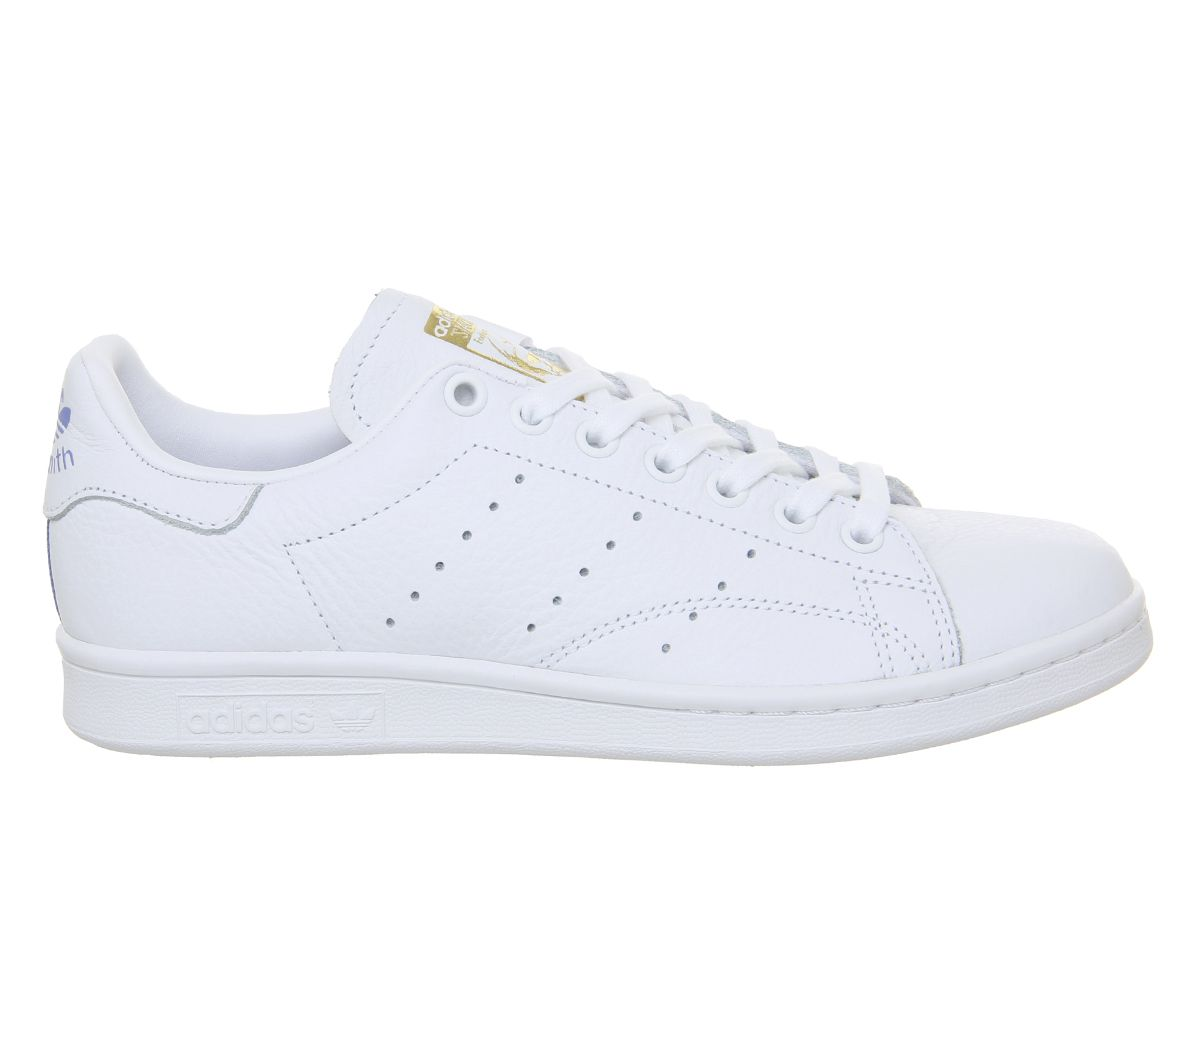 newest e3695 b84b3 Sentinel Womens Adidas Stan Smith Trainers White Real Lilac Raw Gold F  Trainers Shoes